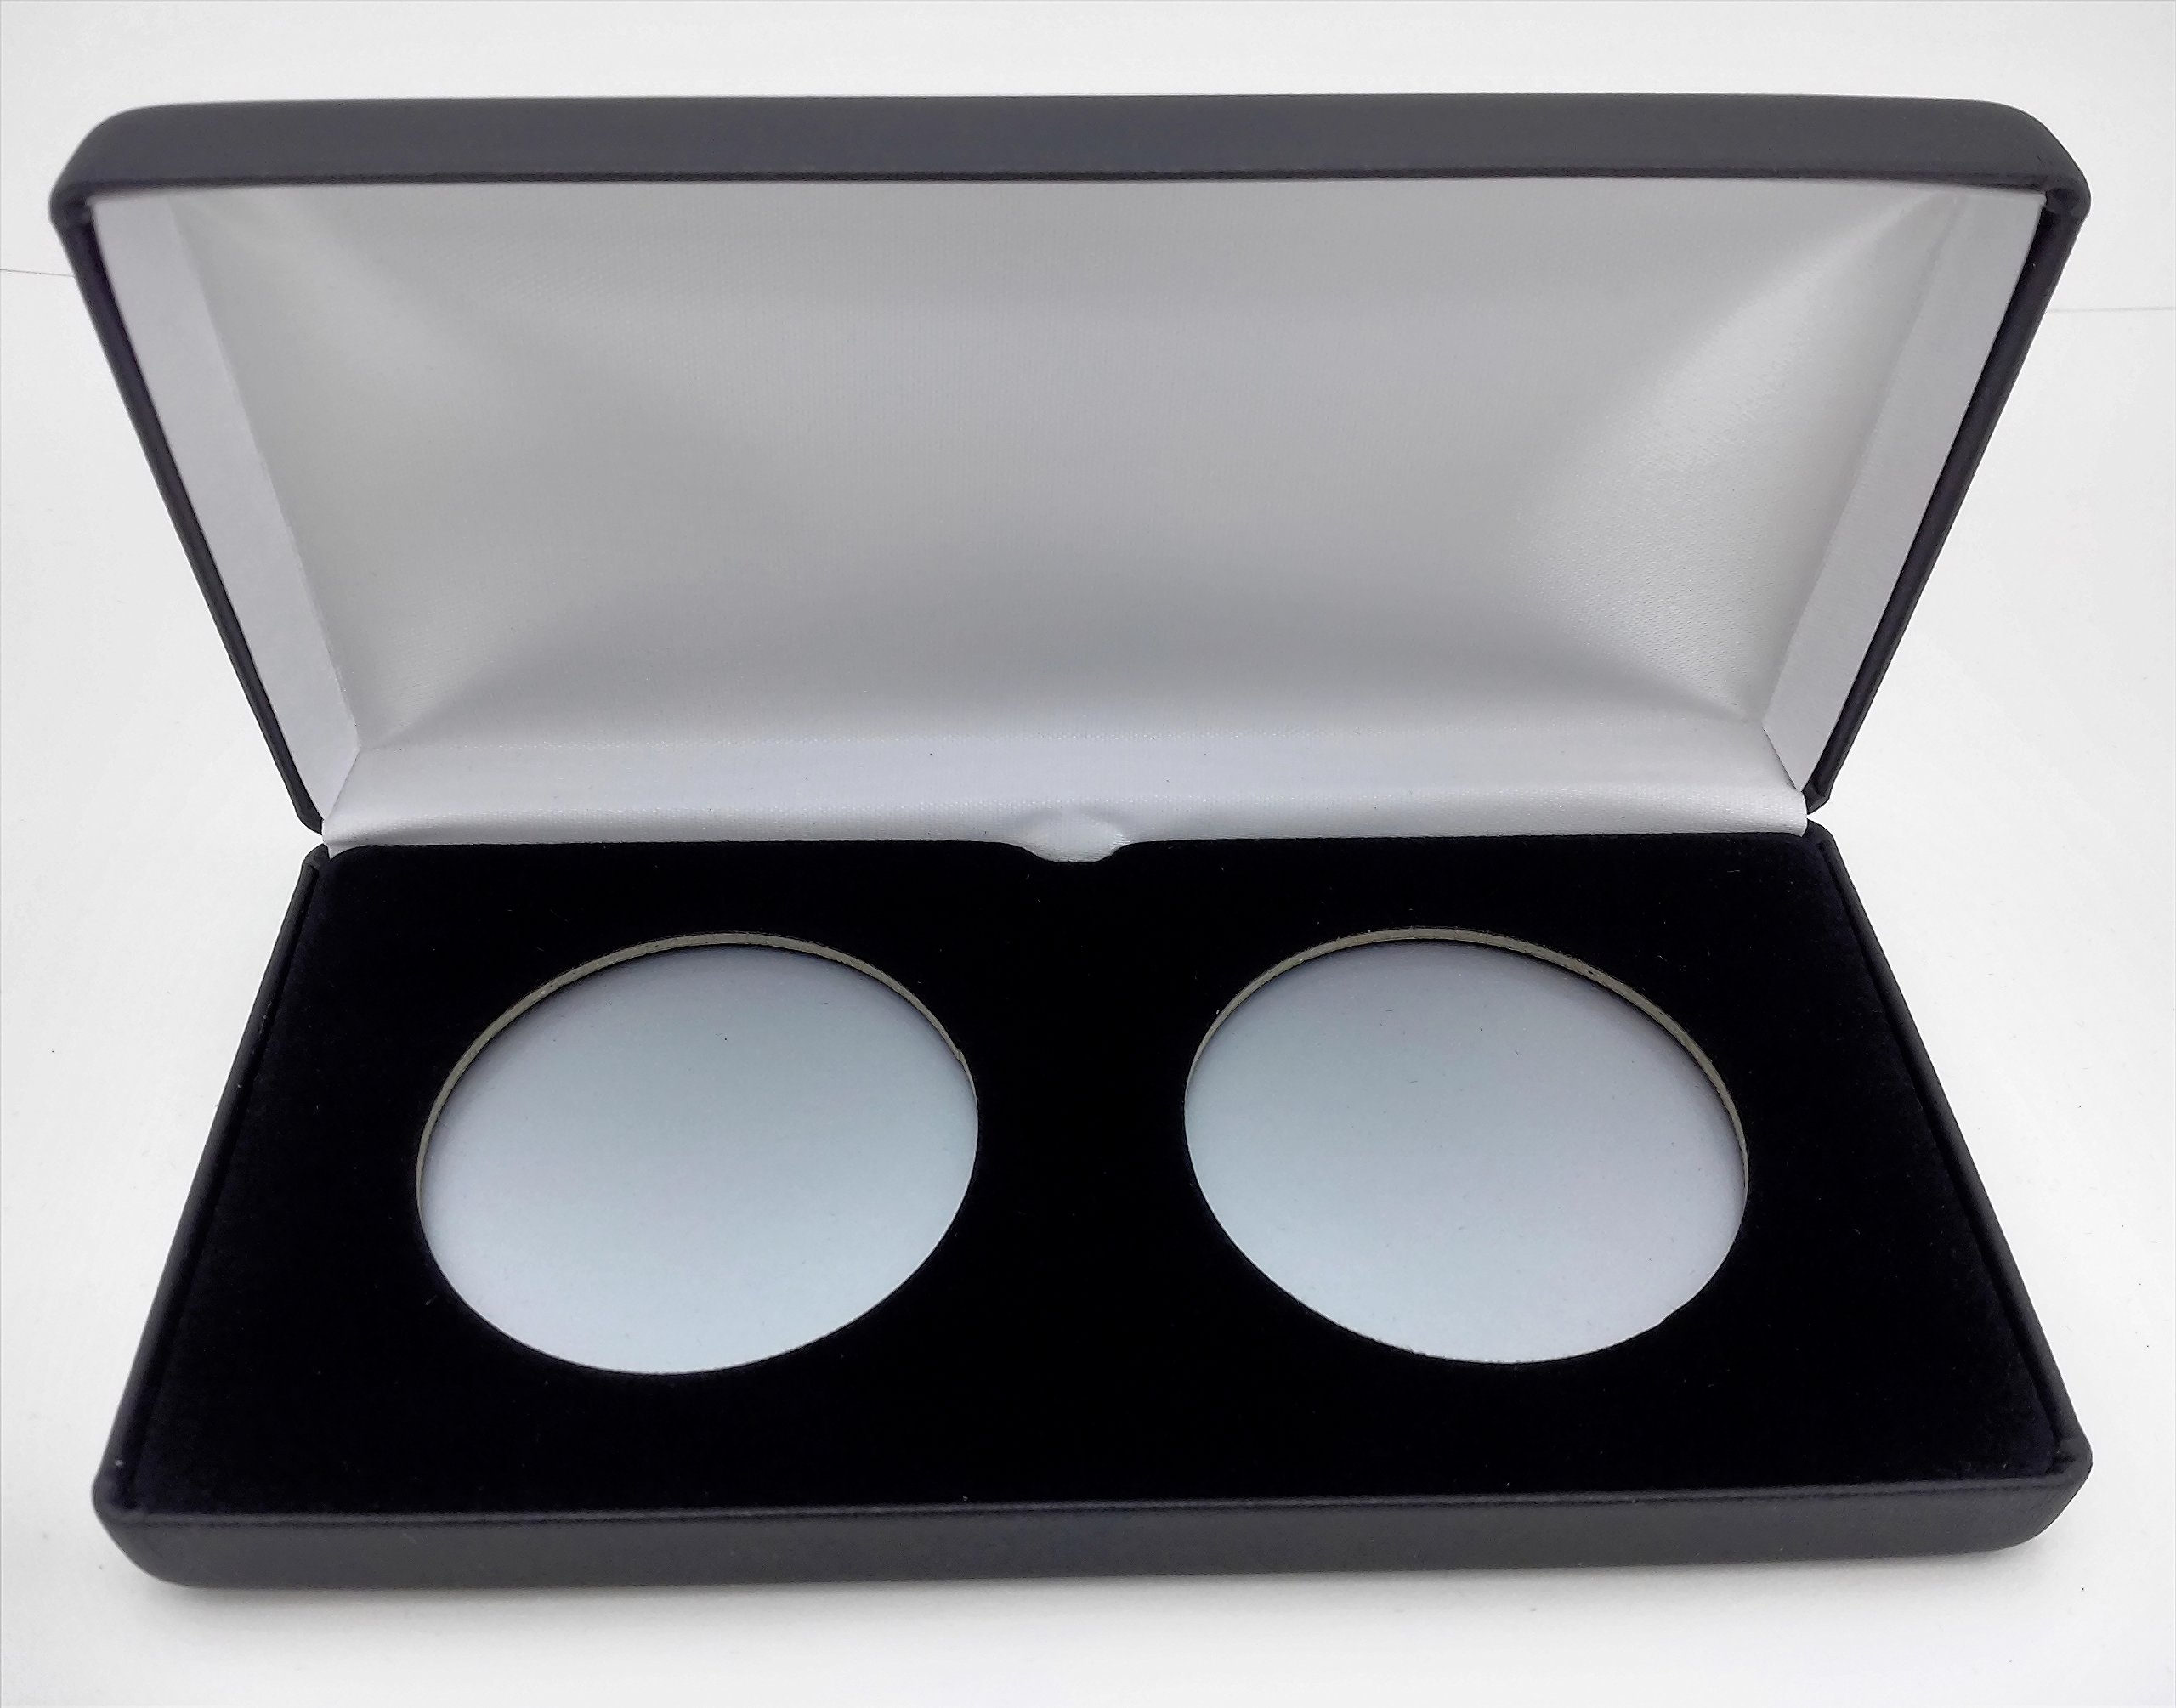 (1) Air-Tite Black Leatherette Coin Presentation Case (Holds 2) for Air-Tite Brand Coin Holder Capsules (Model ''X'' Case)